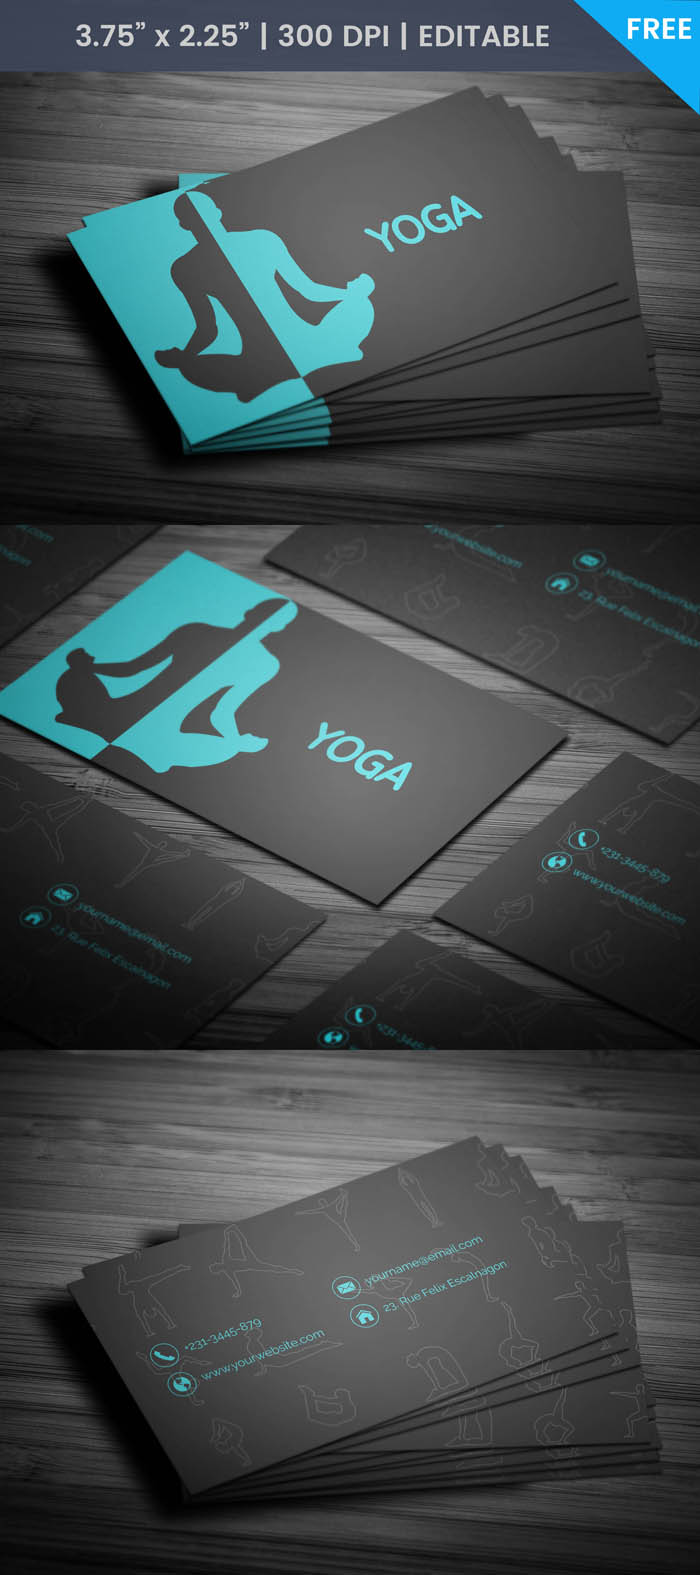 Free Yoga Instructor Business Card Template